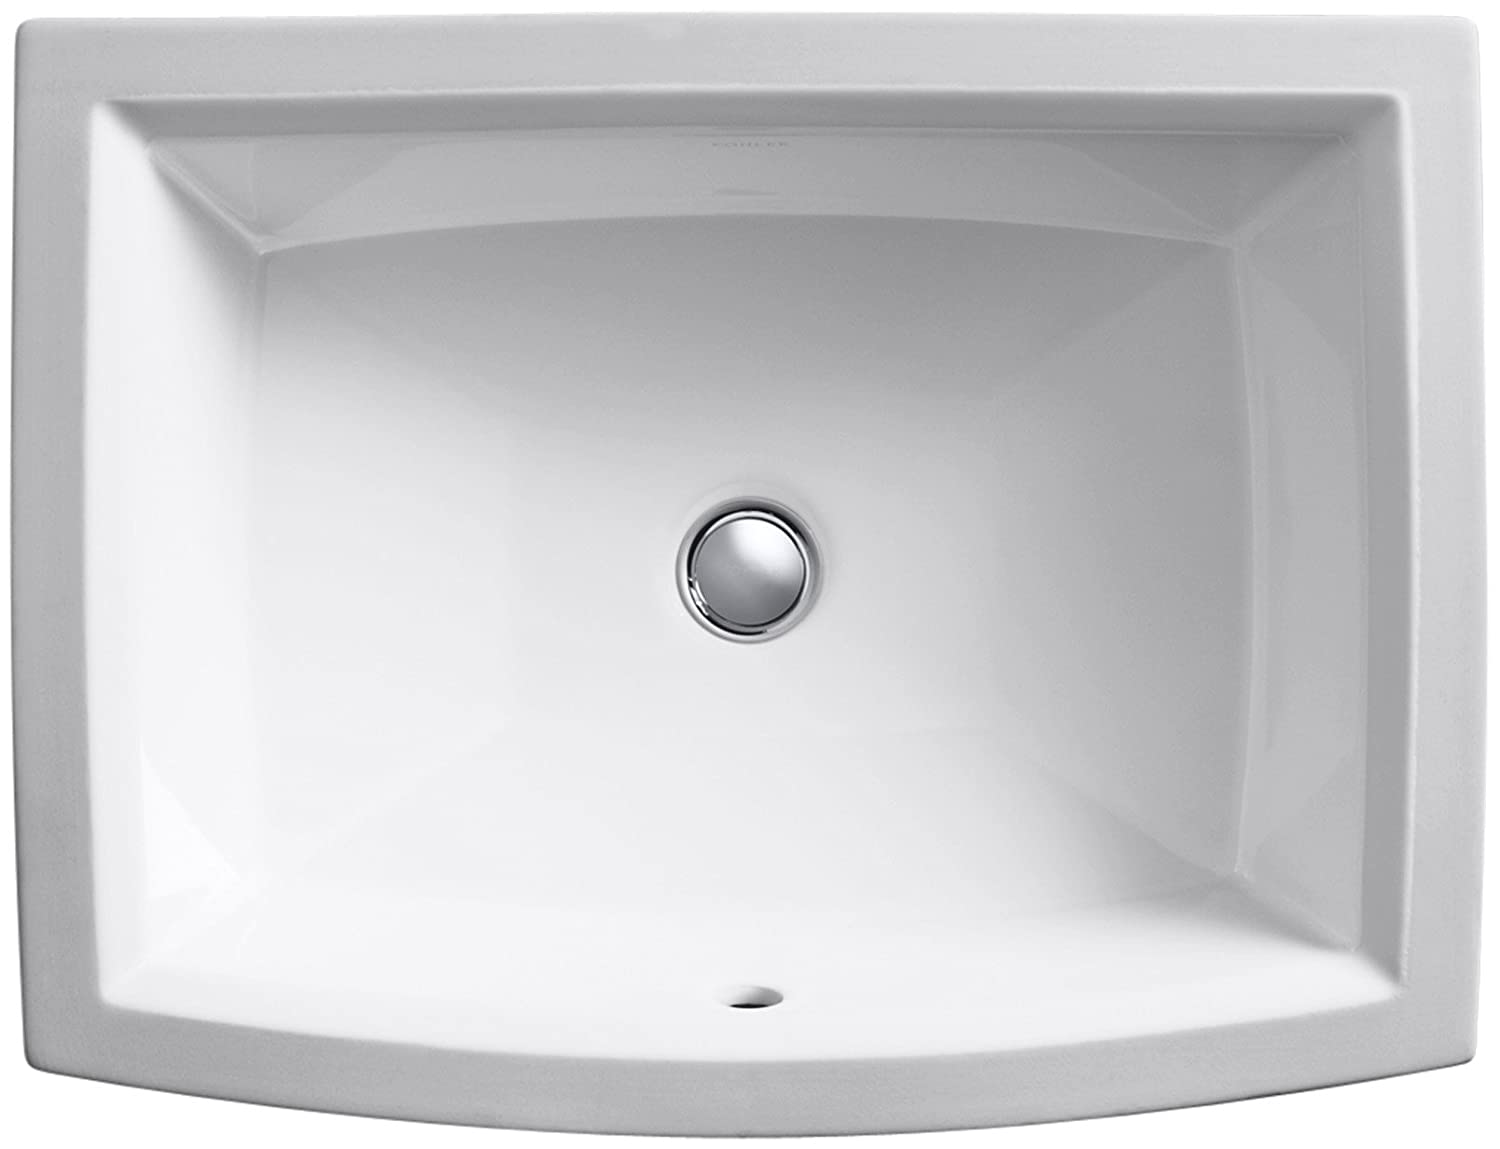 KOHLER K-2355-96 Archer Undercounter Bathroom Sink, Biscuit ...